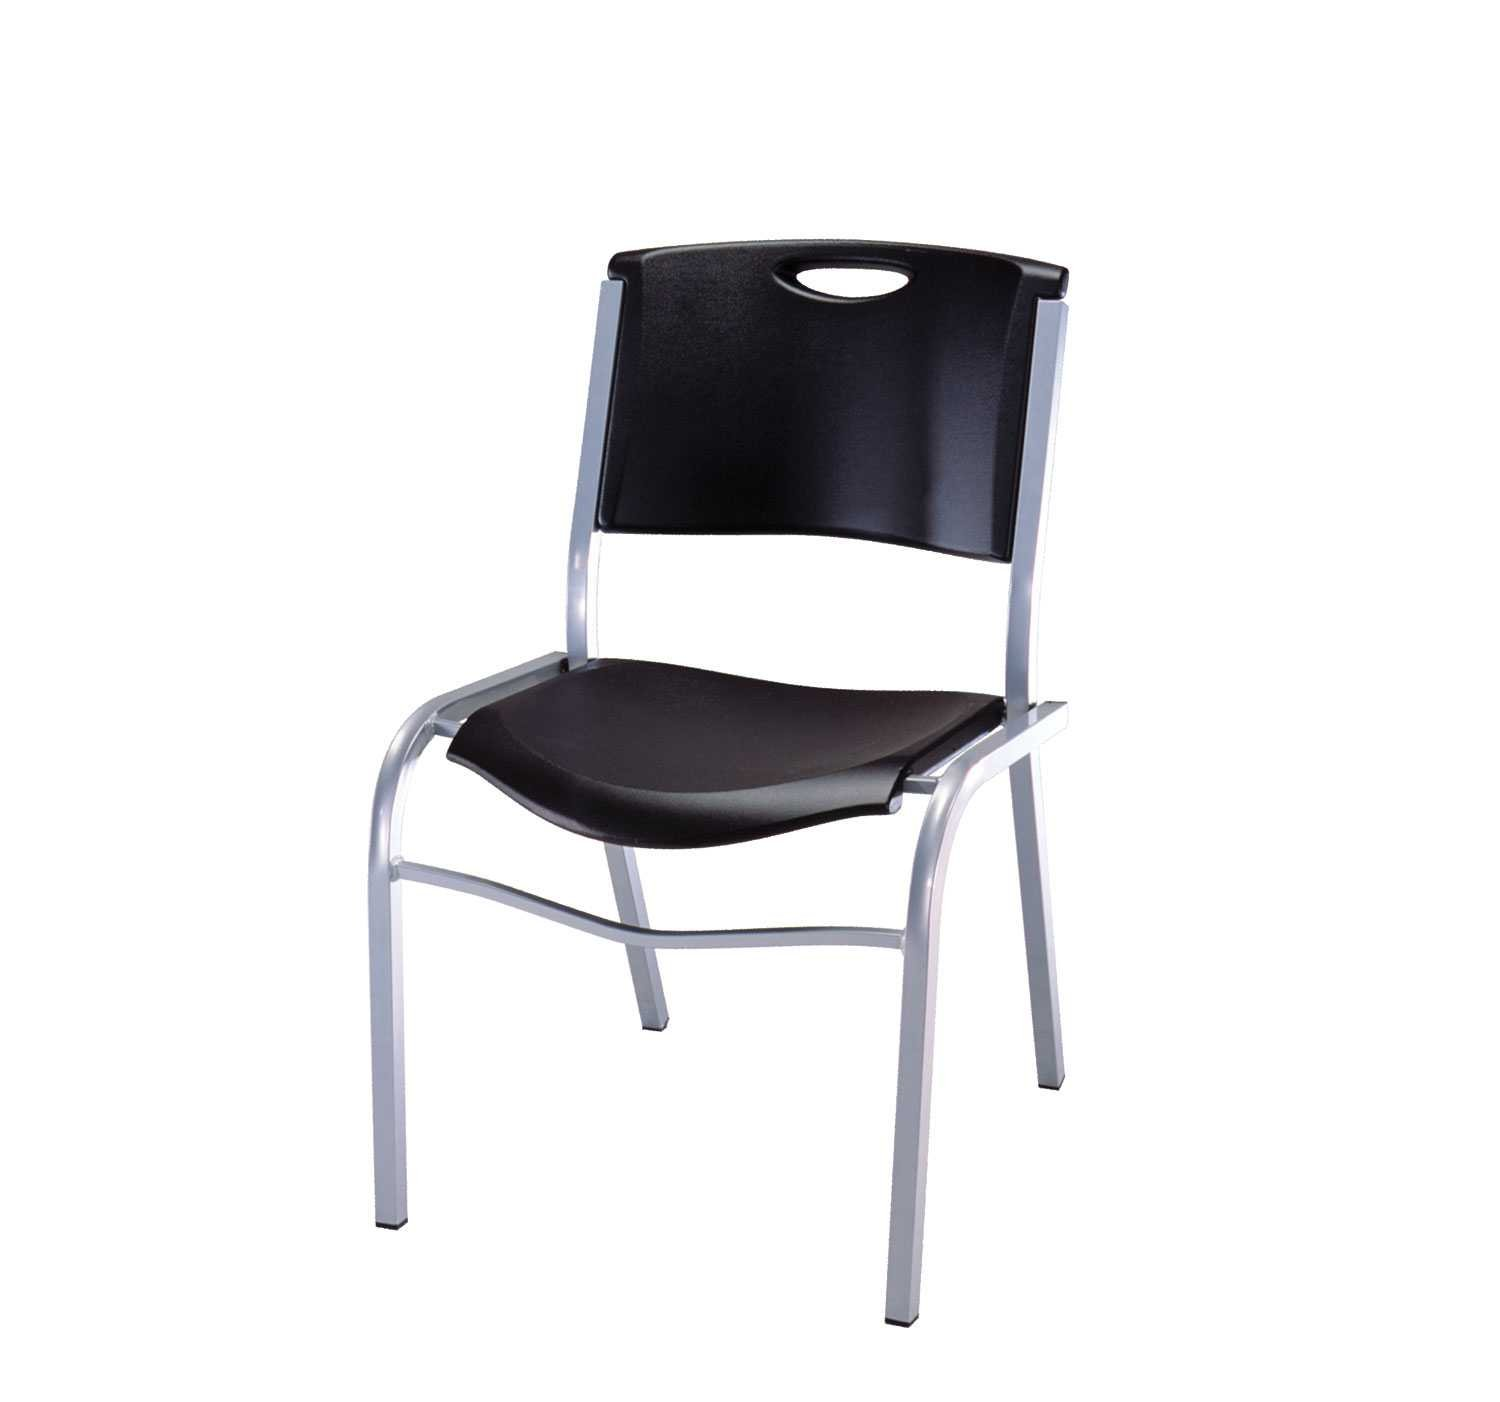 Lifetime 42830 Stacking Chair, Black with Silver Steel Frame, 4 Pack